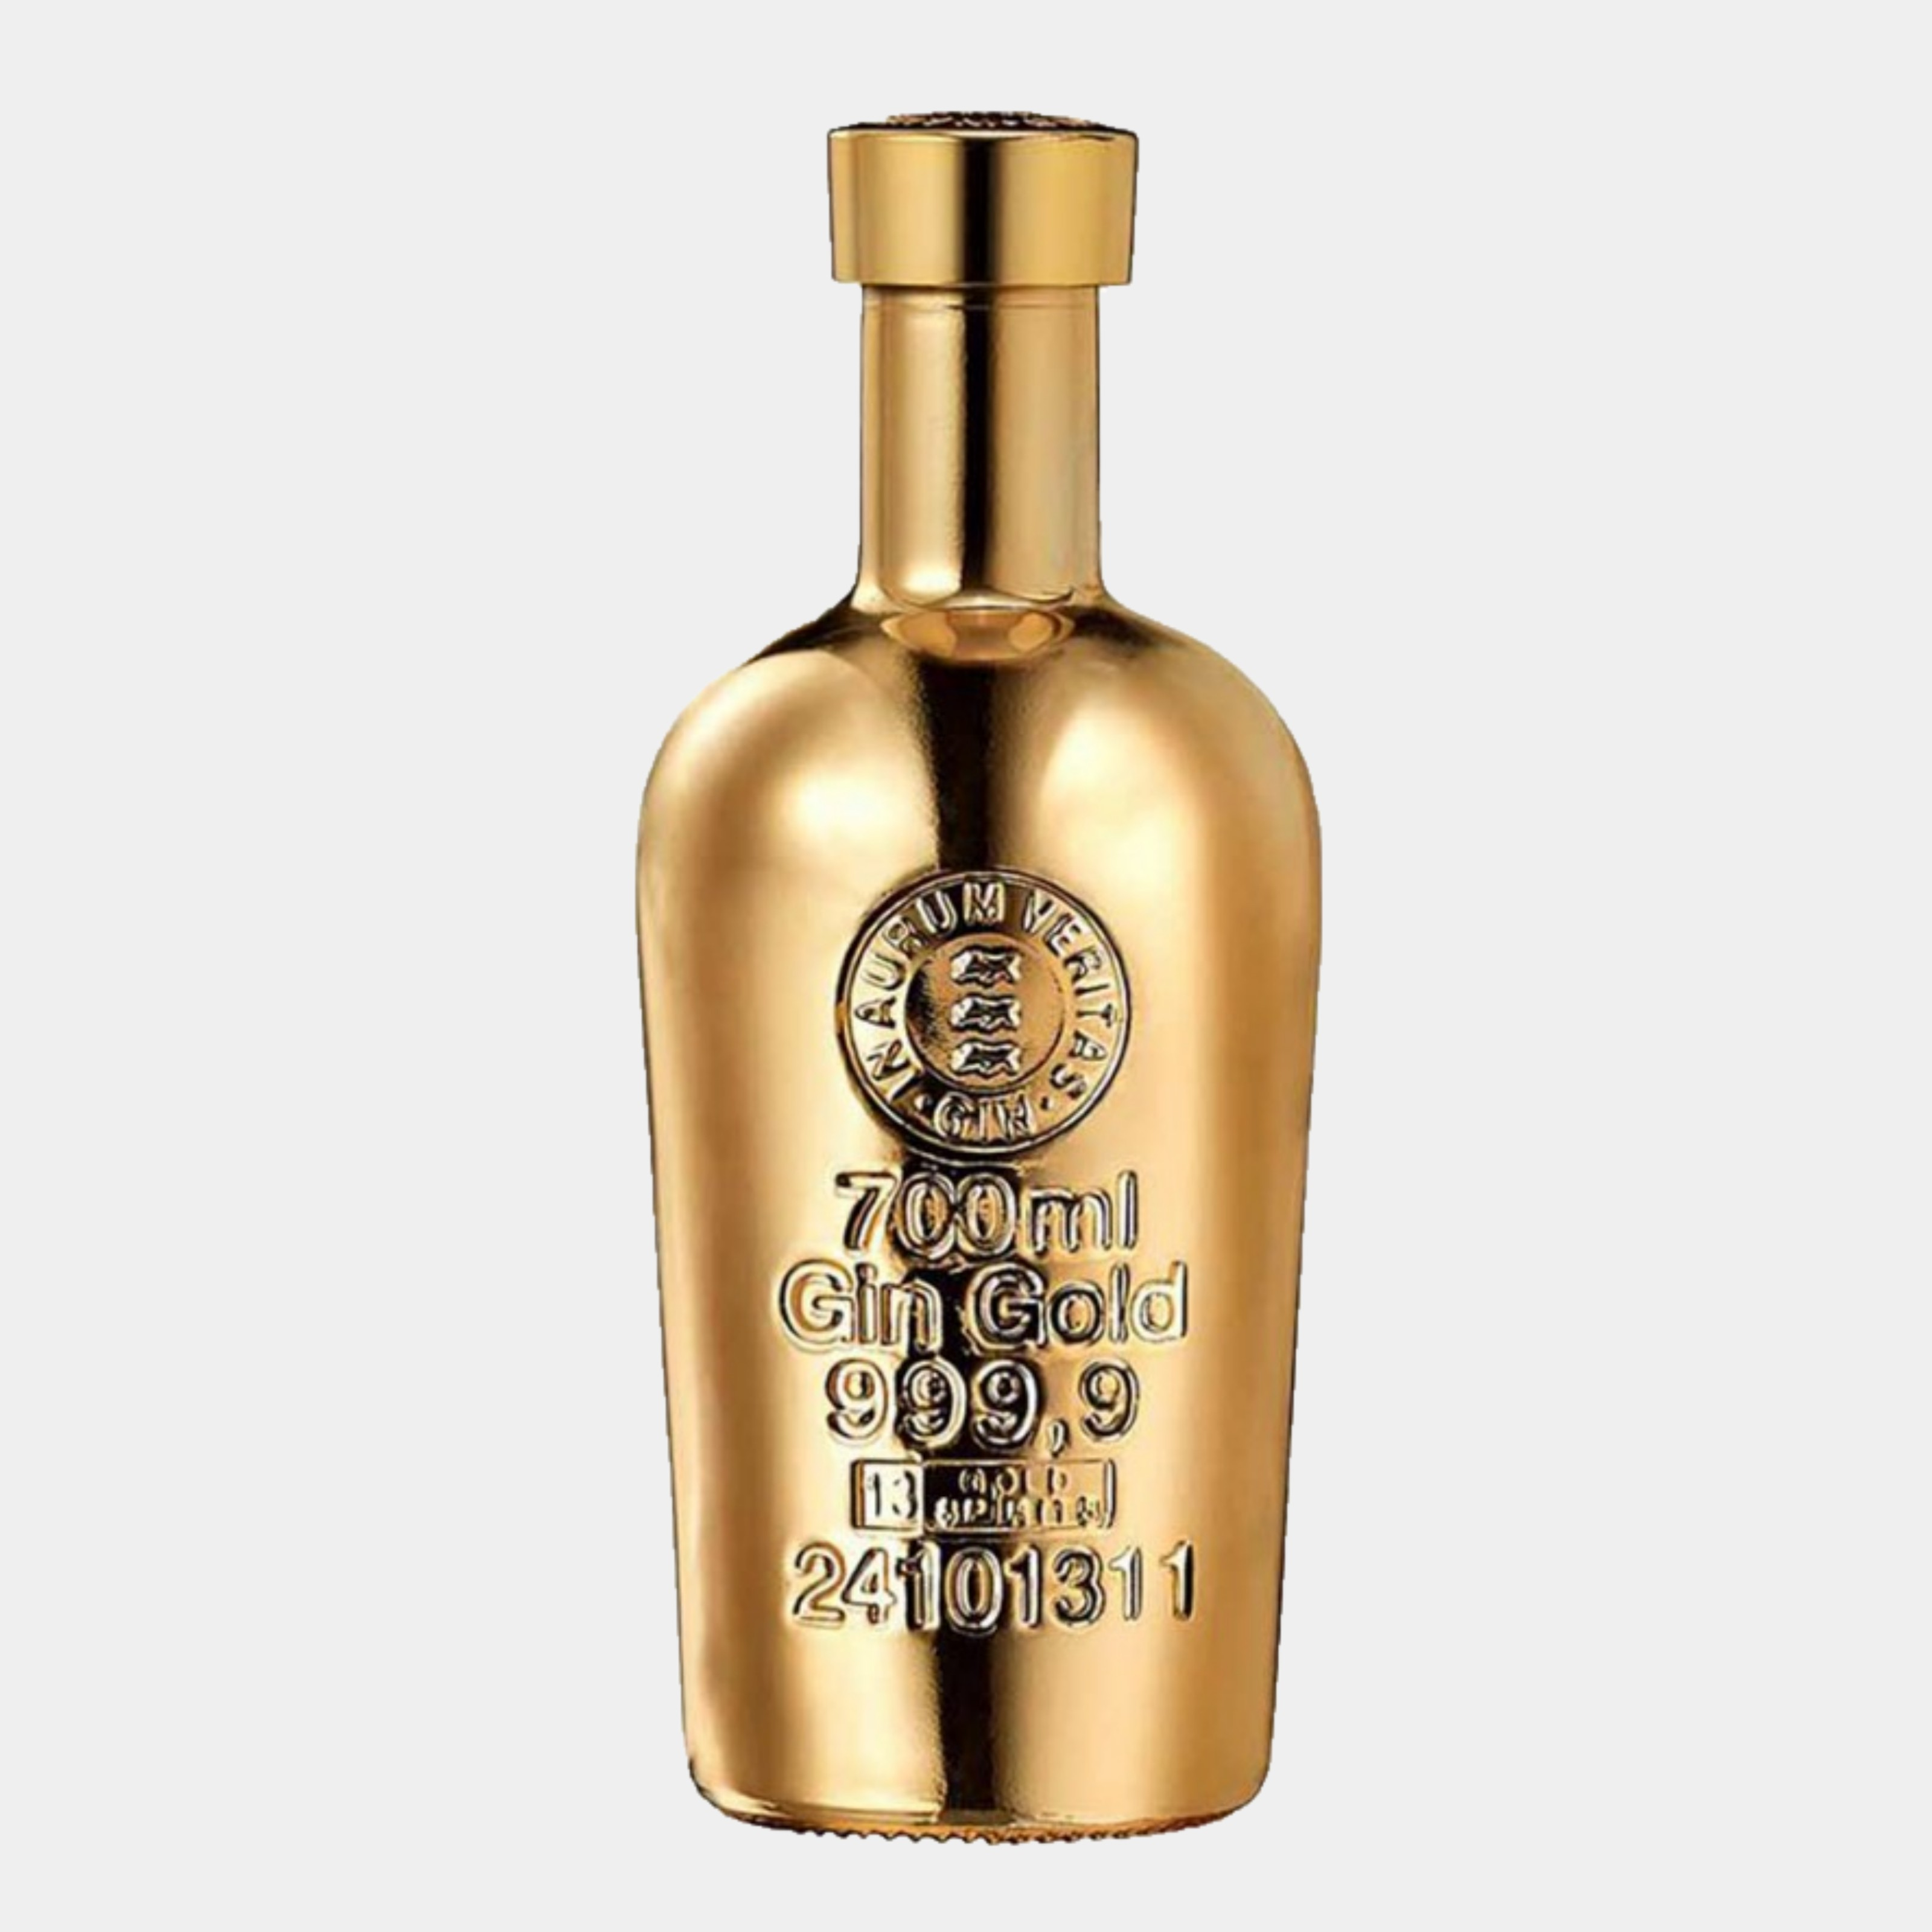 Gin Gold 999.9 0.7 L 40% Alk. Ginobility